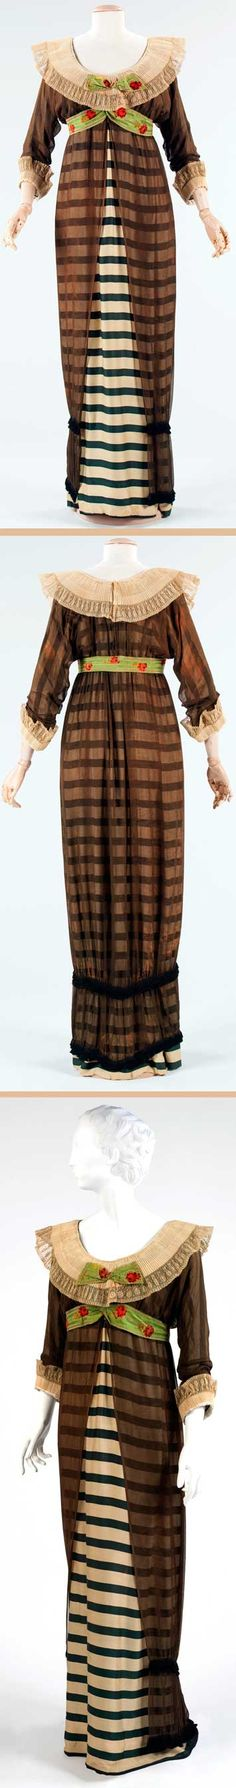 "Evening dress, Poiret, 1910. Silk and linen. One of Poiret's early designs. ""His combination of historical recreation, as seen in the pleated collar, alongside the modern, such as the graphic bold horizontal stripes in the textile, began the freedom in clothing that is synonymous with the emancipation of women."" Metropolitan Museum of Art"